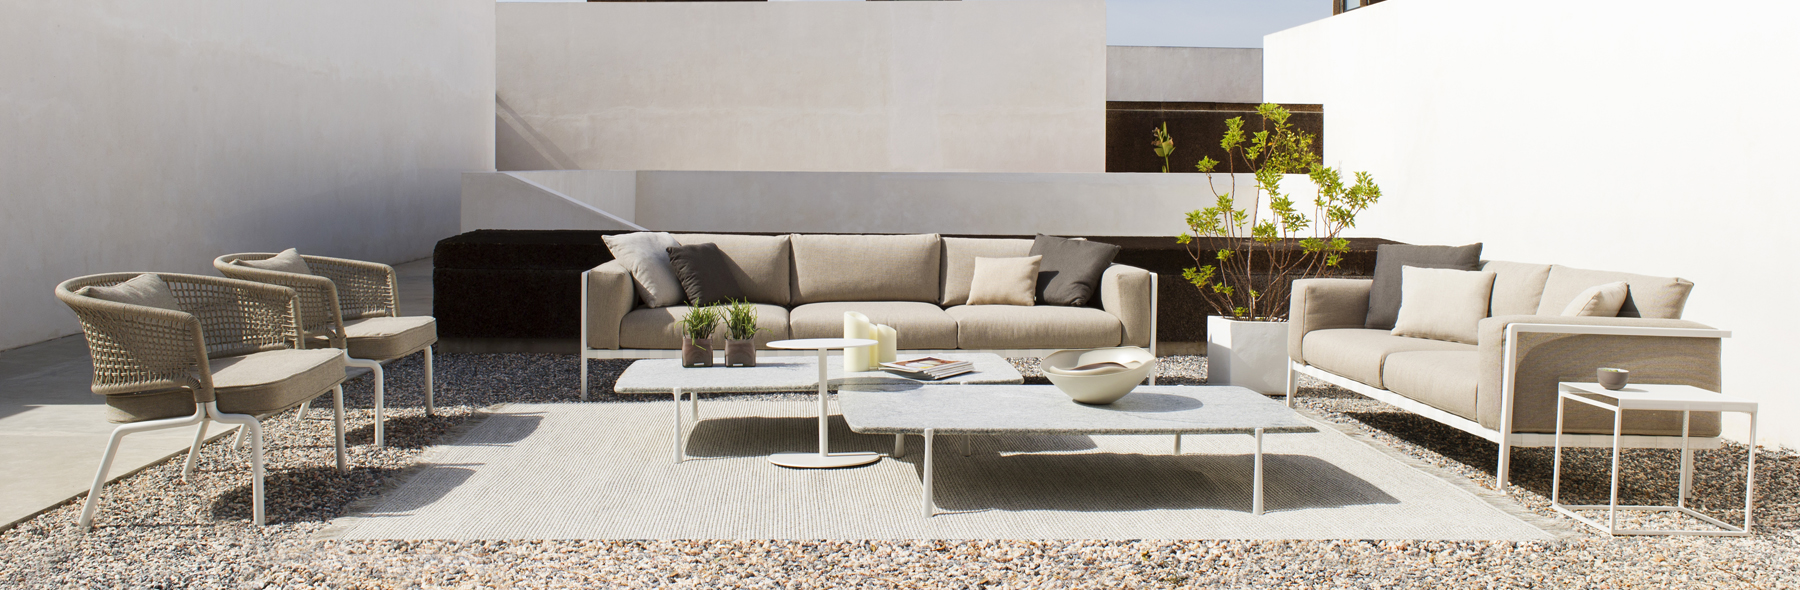 Modern Garden Furniture Contemporary Garden Furniture